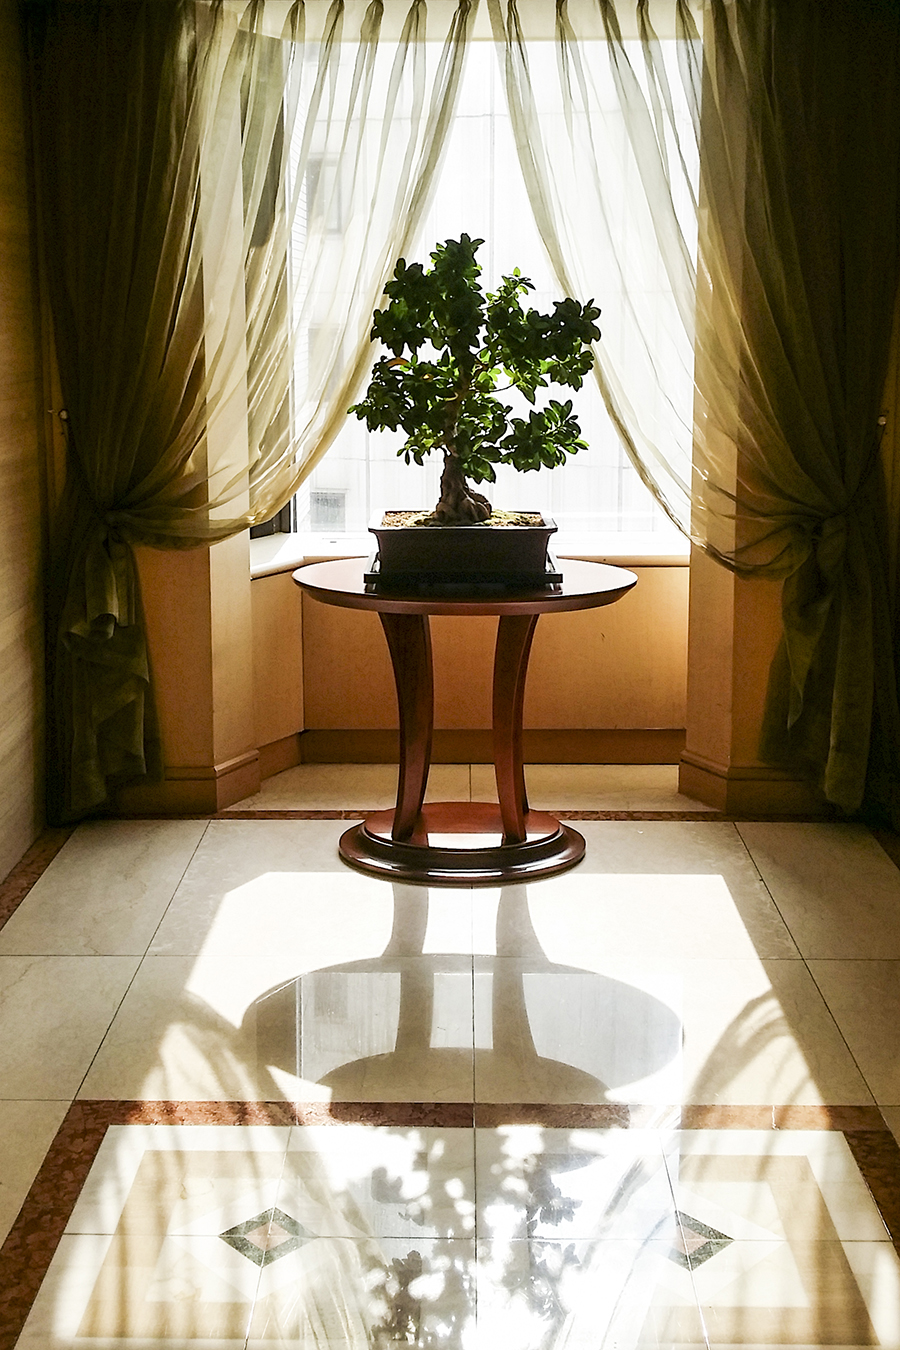 Morning light through a potted plant at the Lotte Hotel, Myeongdong, Korea